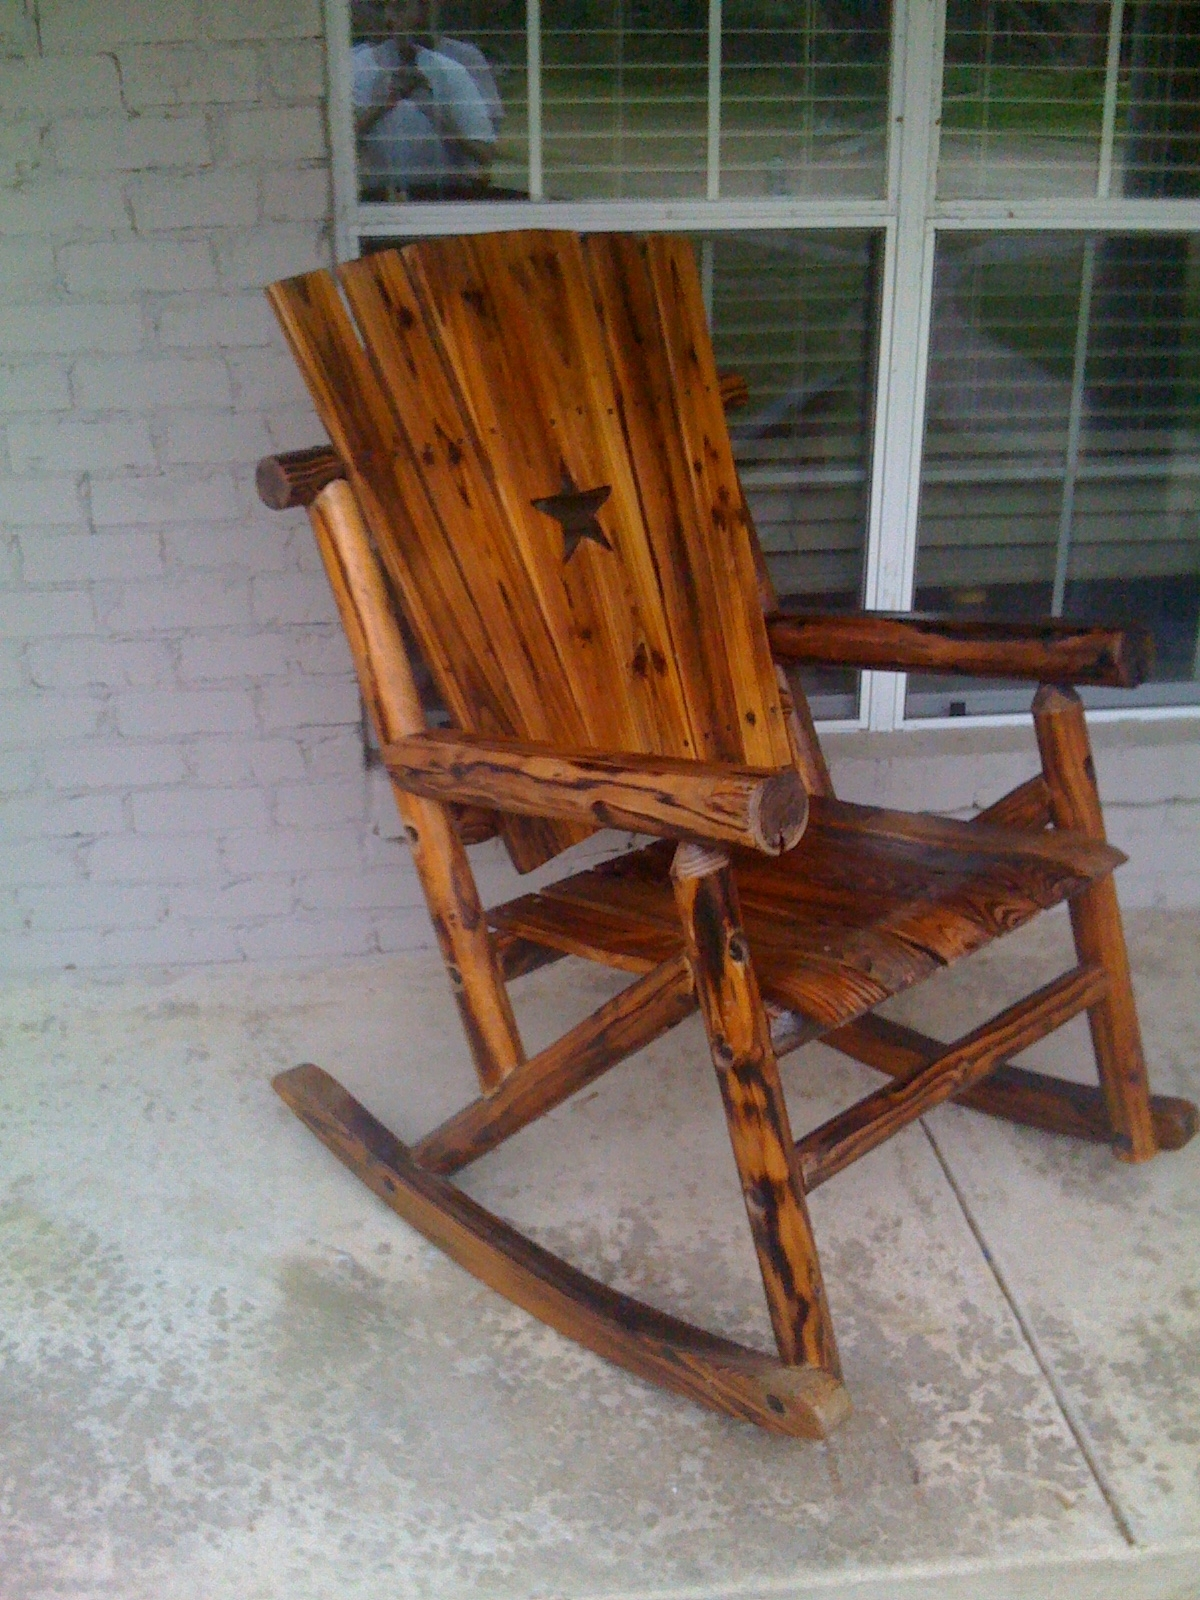 Retro Outdoor Rocking Chairs Inside 2018 Patio : Wood Patio Table Unique Ideas Rustic Image Tables Of (View 9 of 20)